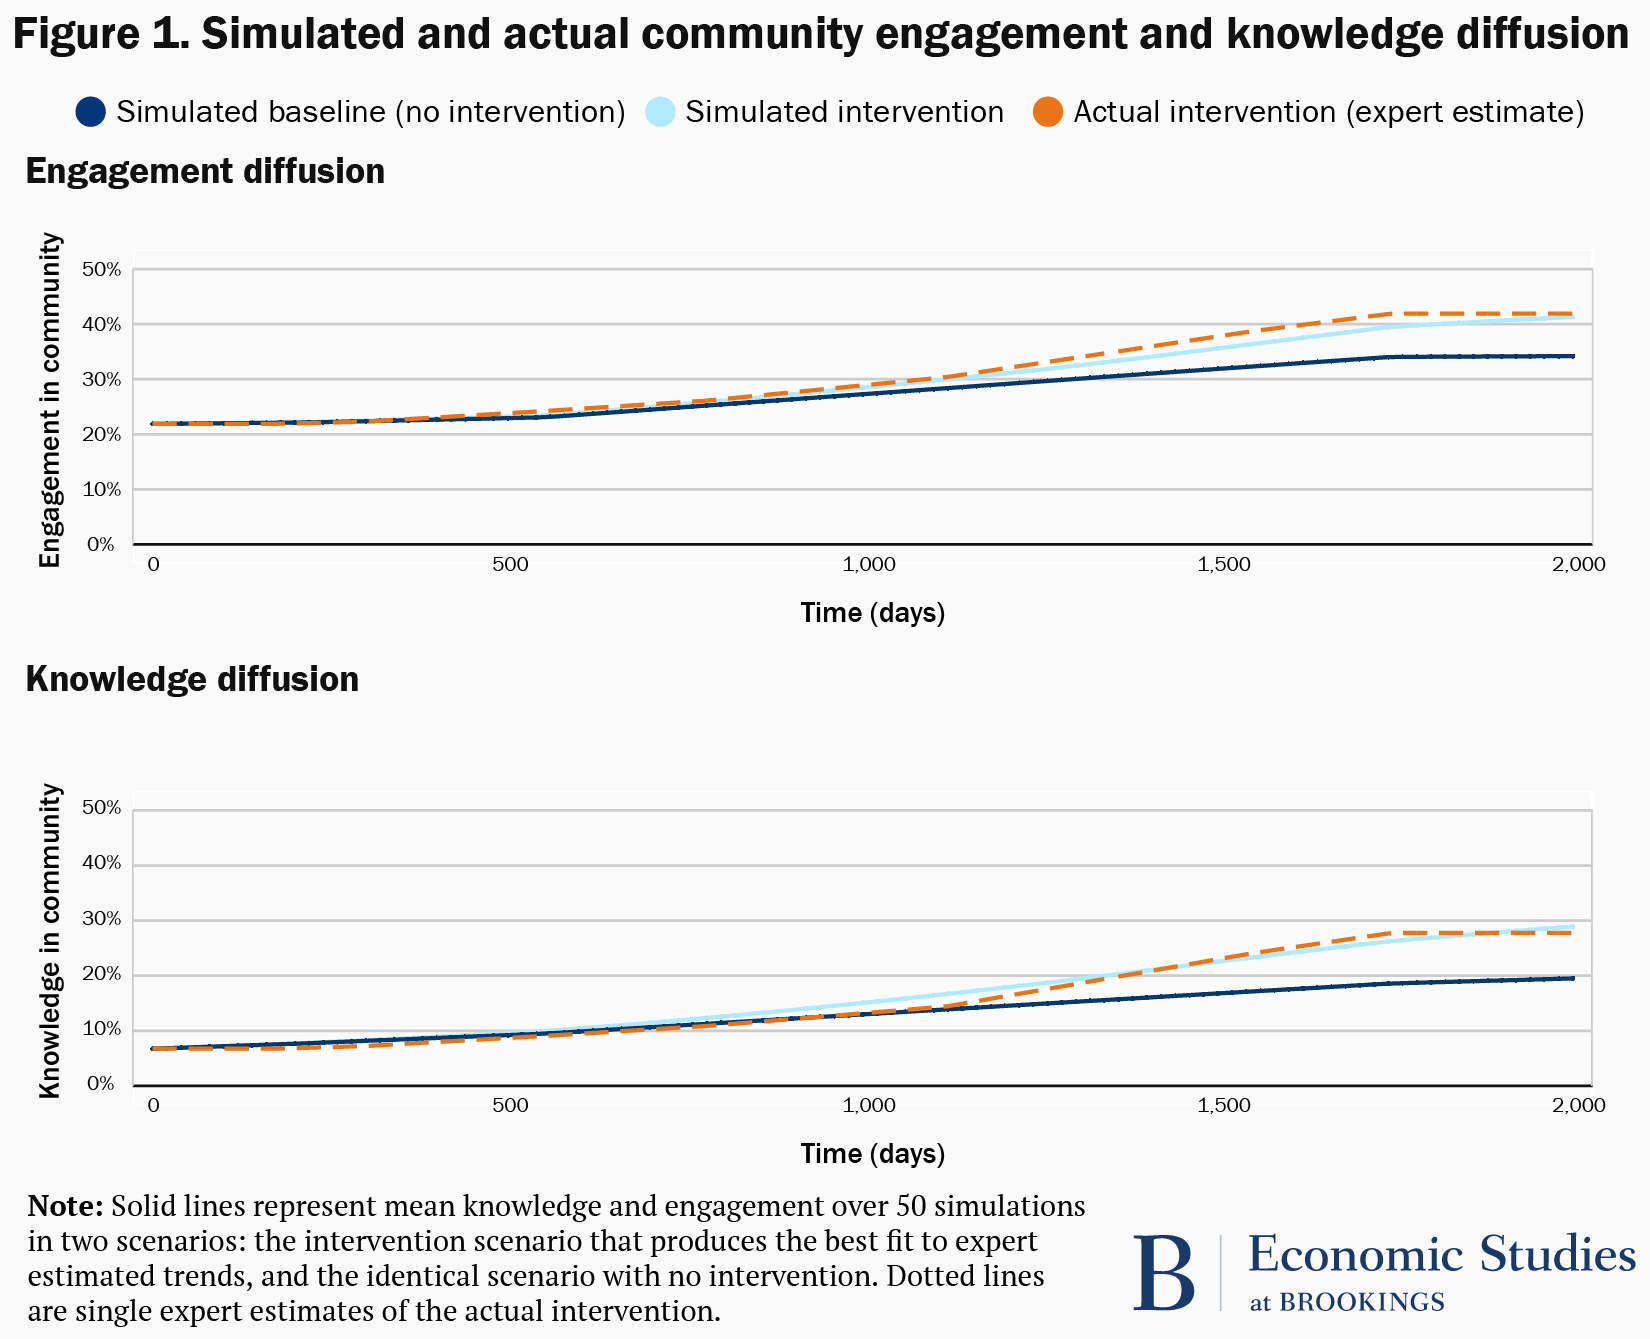 simulated vs actual knowledge and engagement diffusion